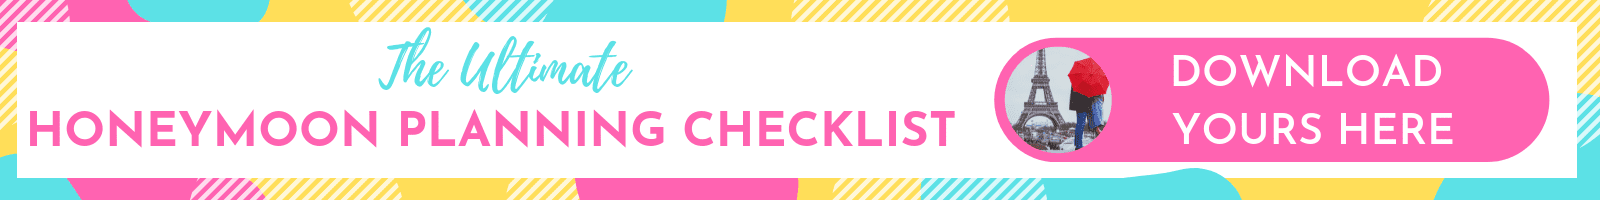 The Ultimate Honeymoon Planning Checklist - Free Download